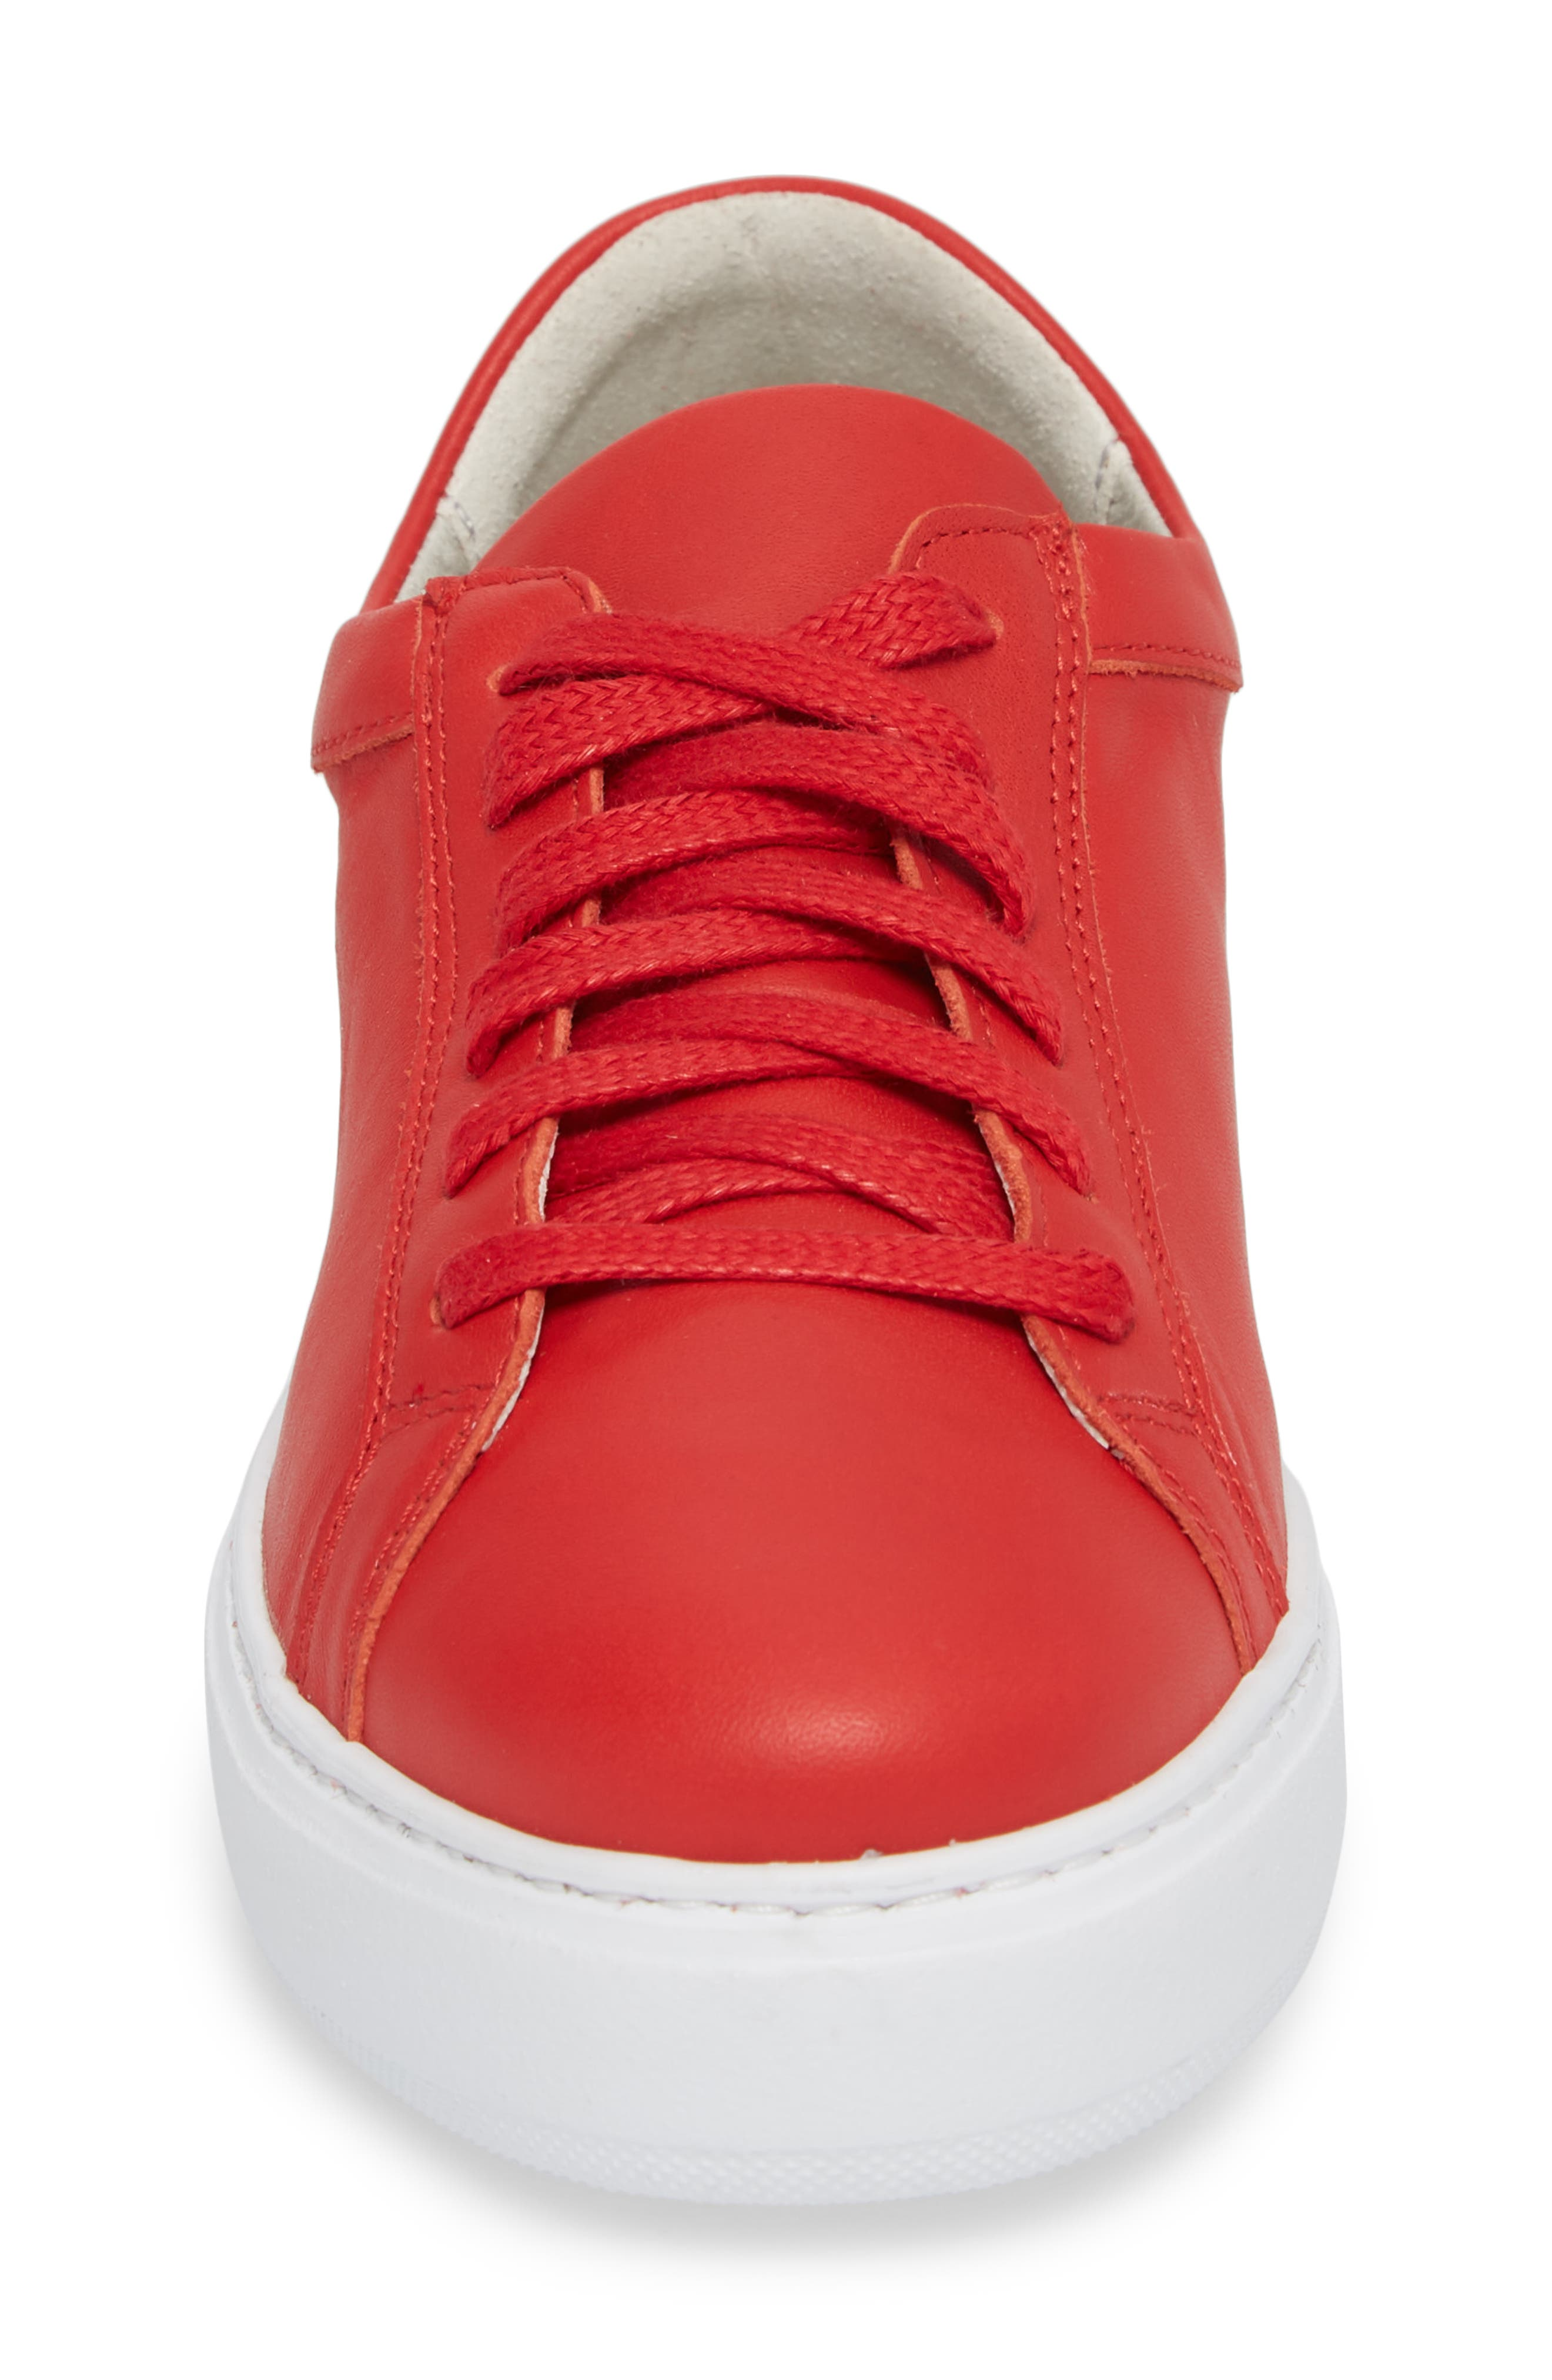 Tully Sneaker,                             Alternate thumbnail 4, color,                             Red Leather